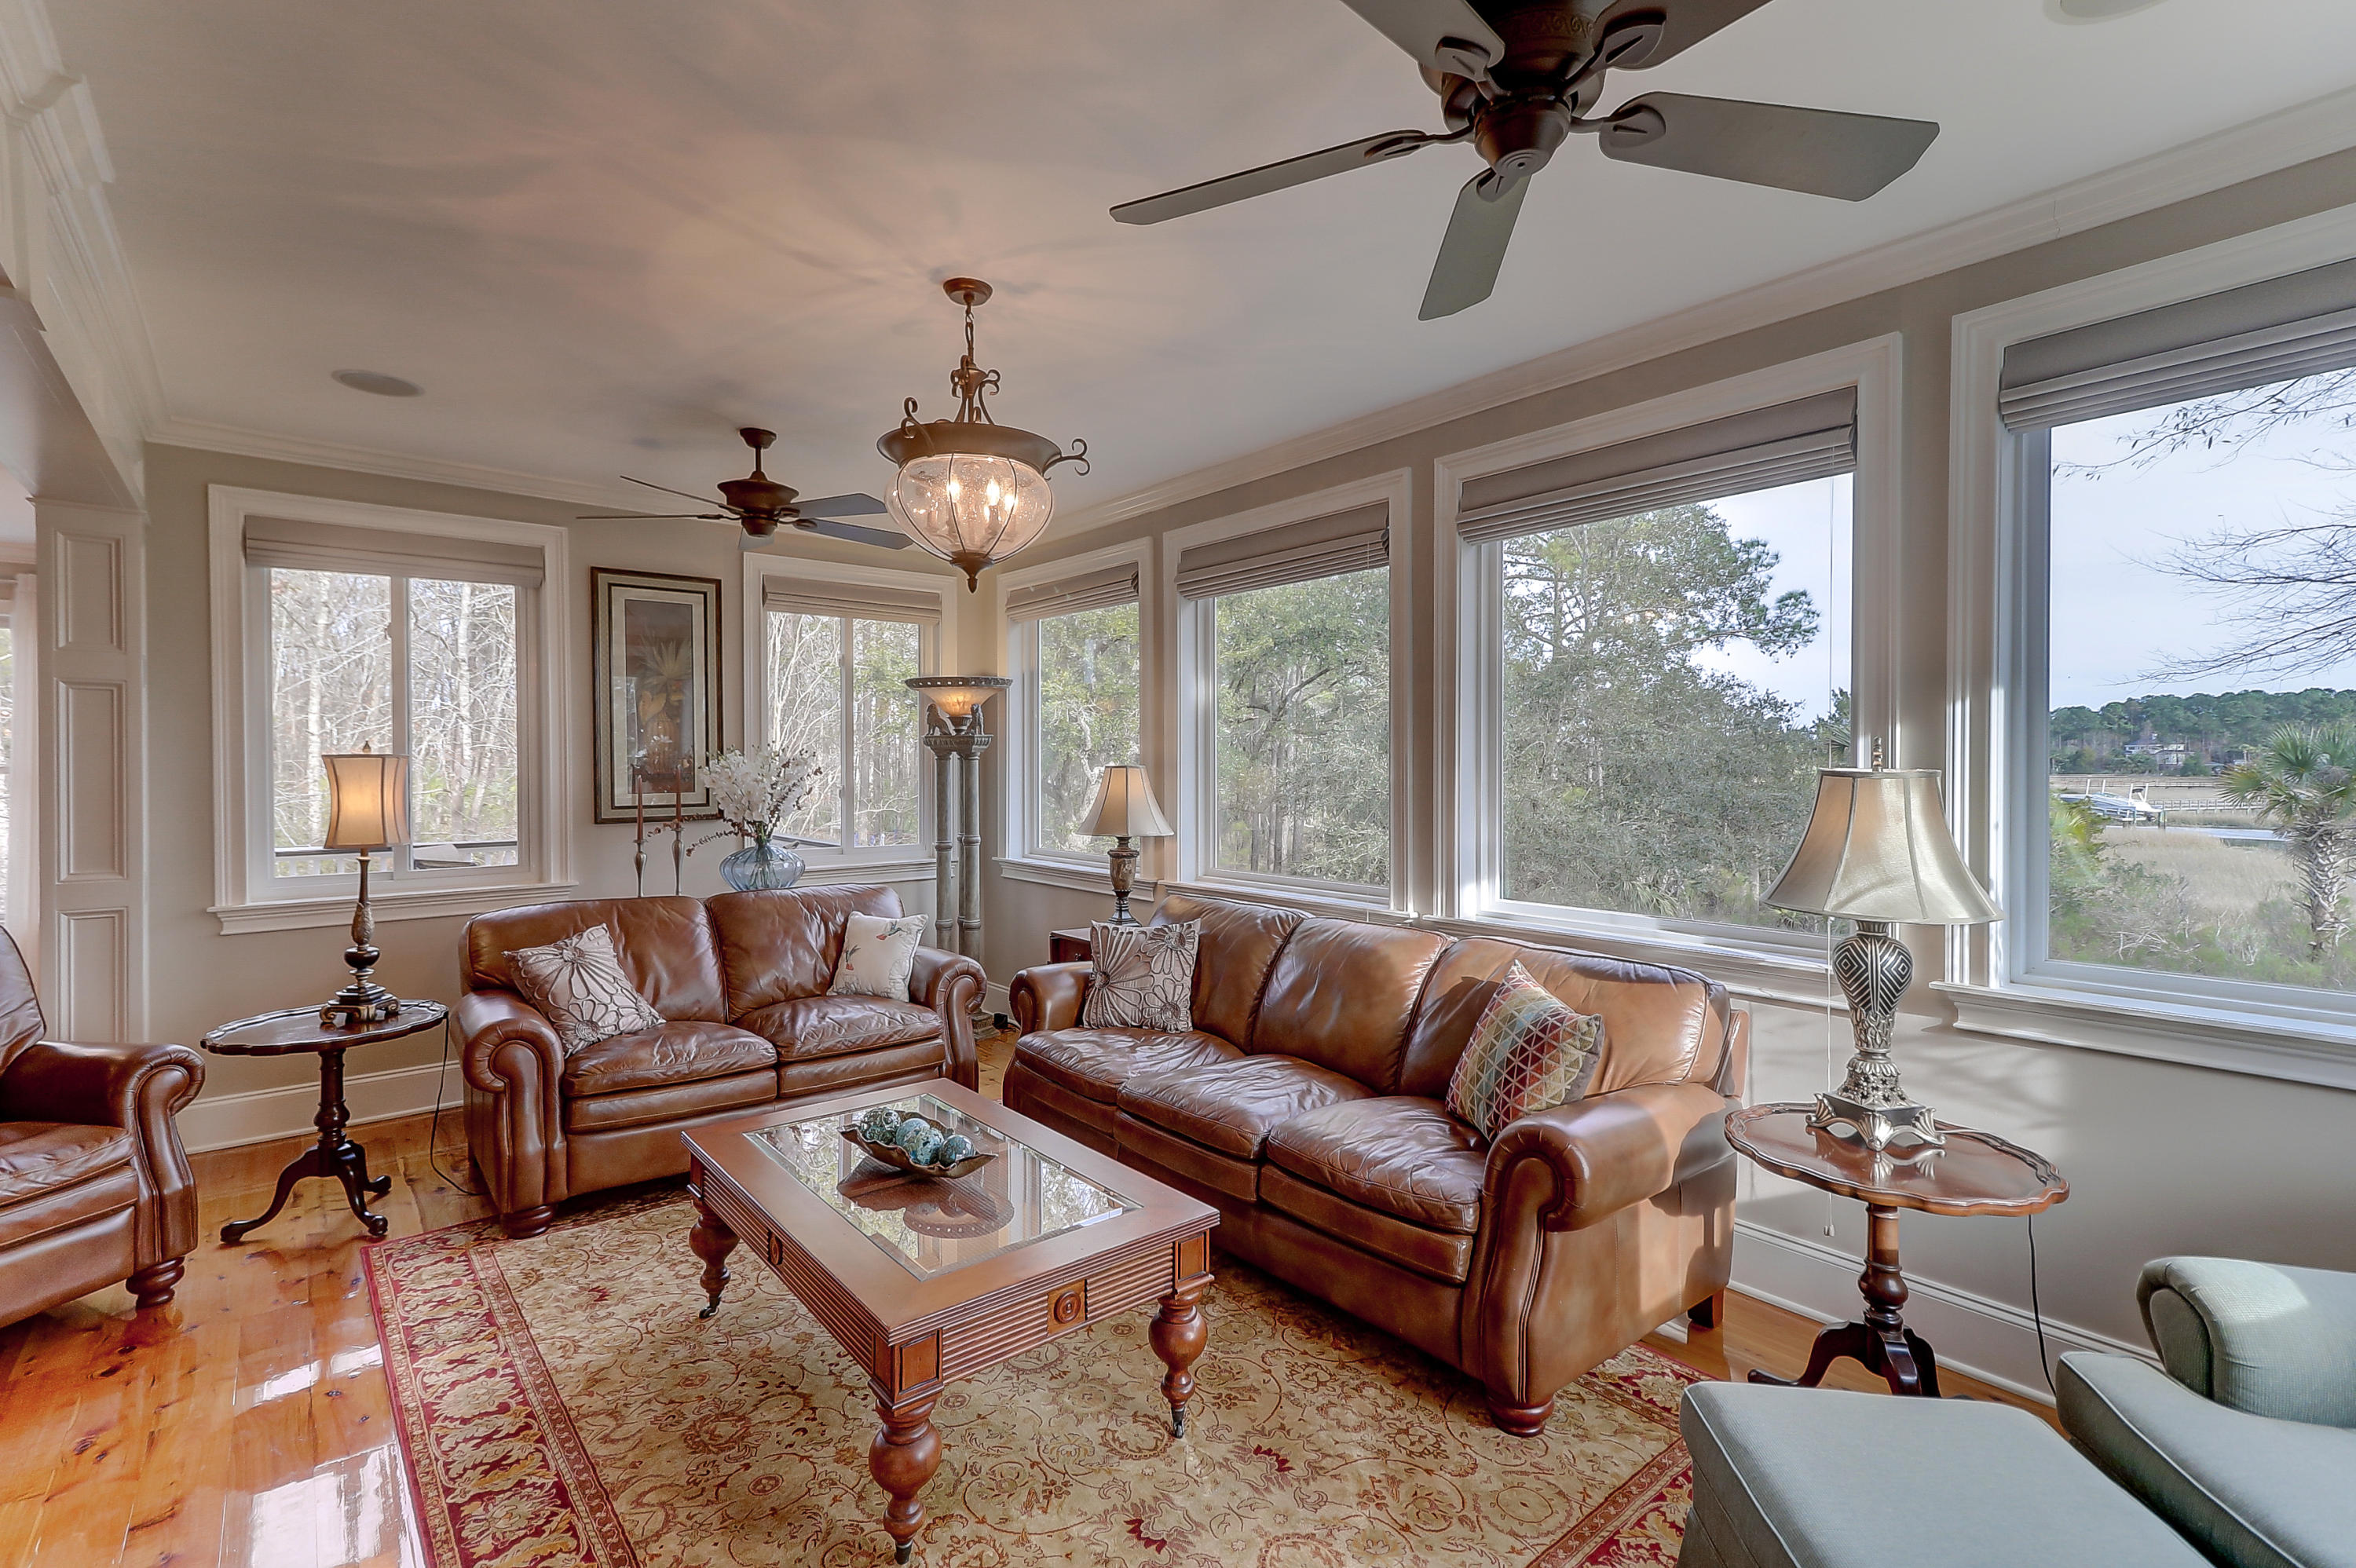 Dunes West Homes For Sale - 1764 Greenspoint, Mount Pleasant, SC - 46